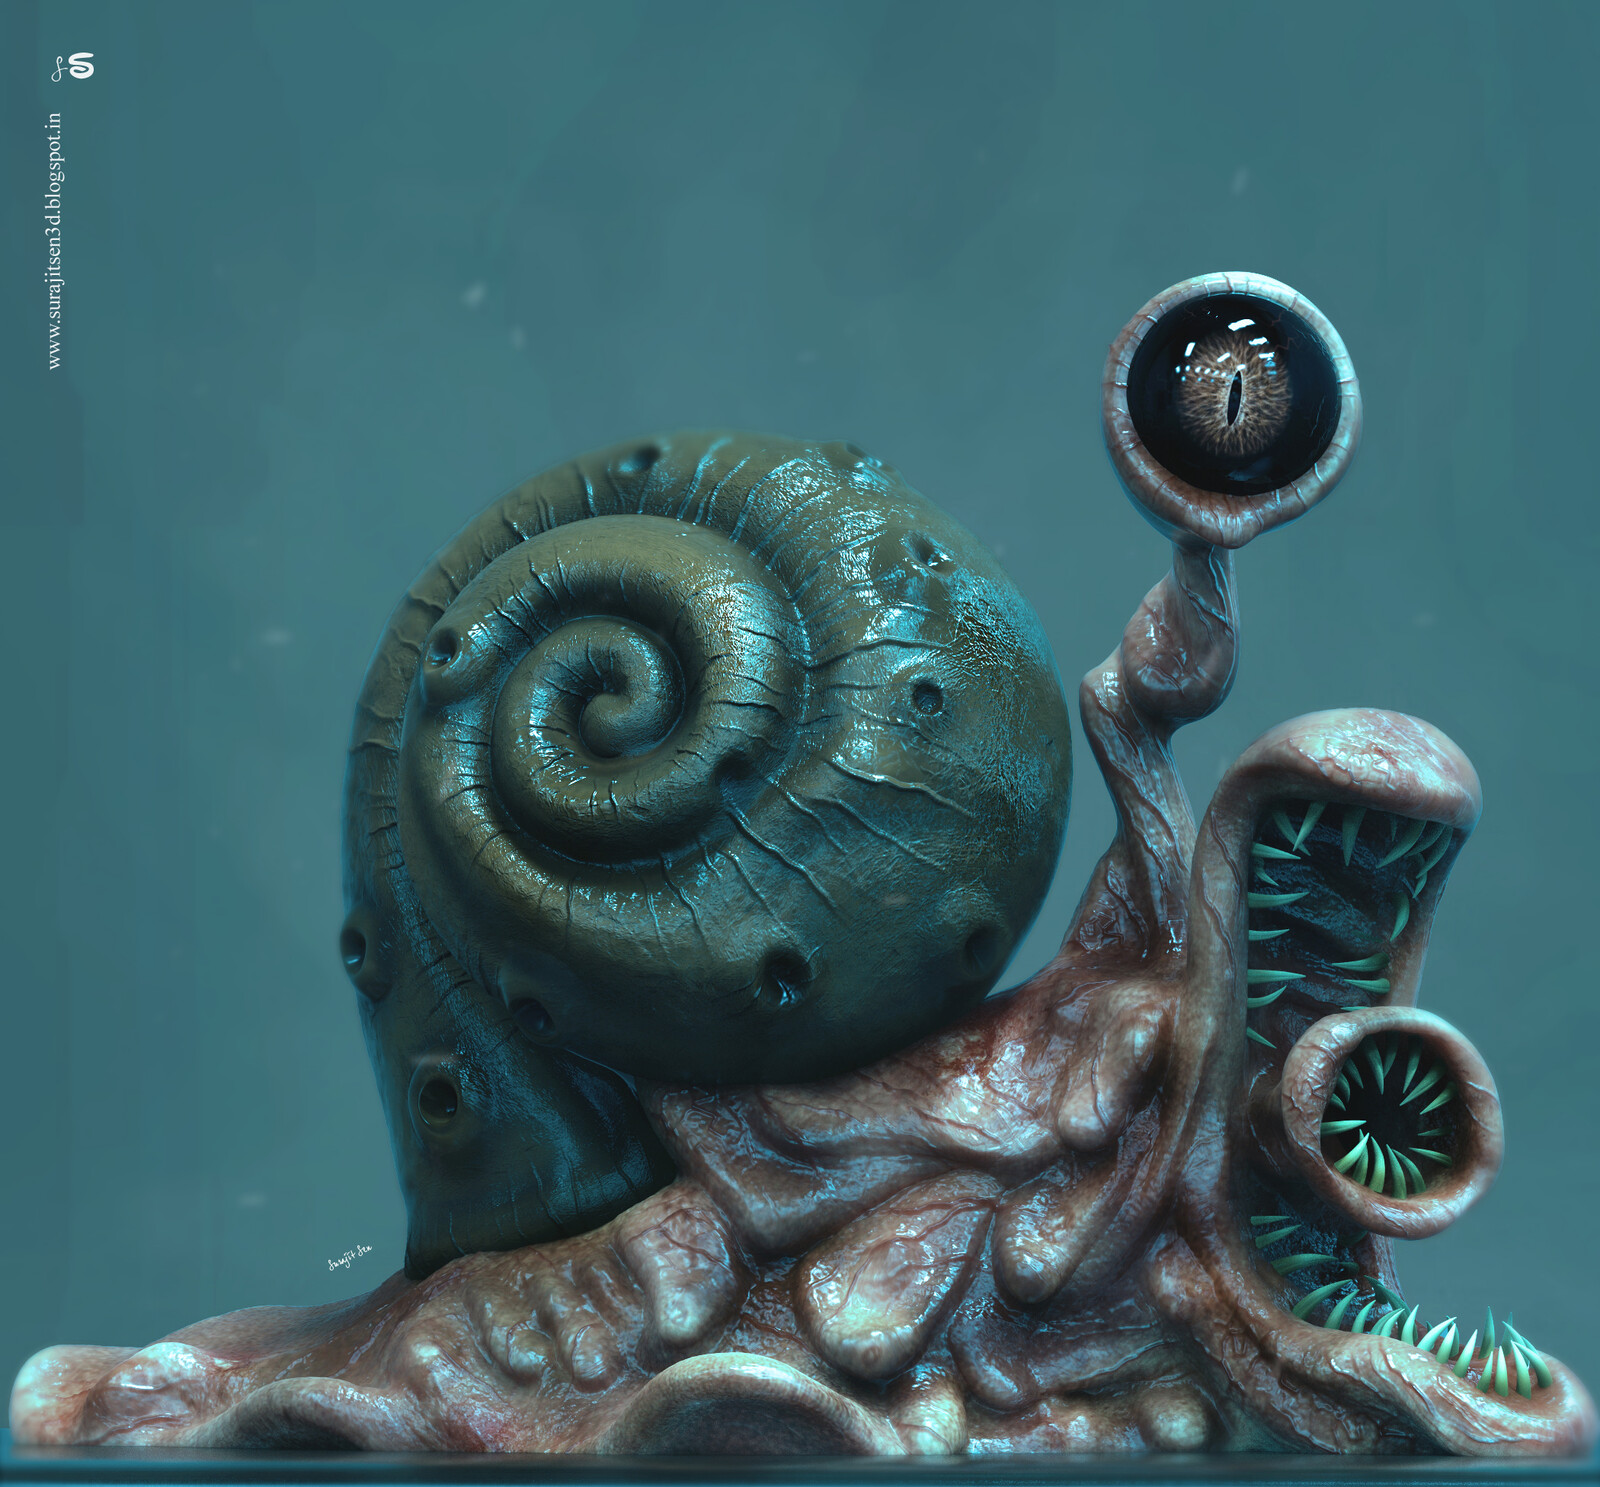 My weekend Concept Sculpt!  Wish to share..:)  Hope you like it.